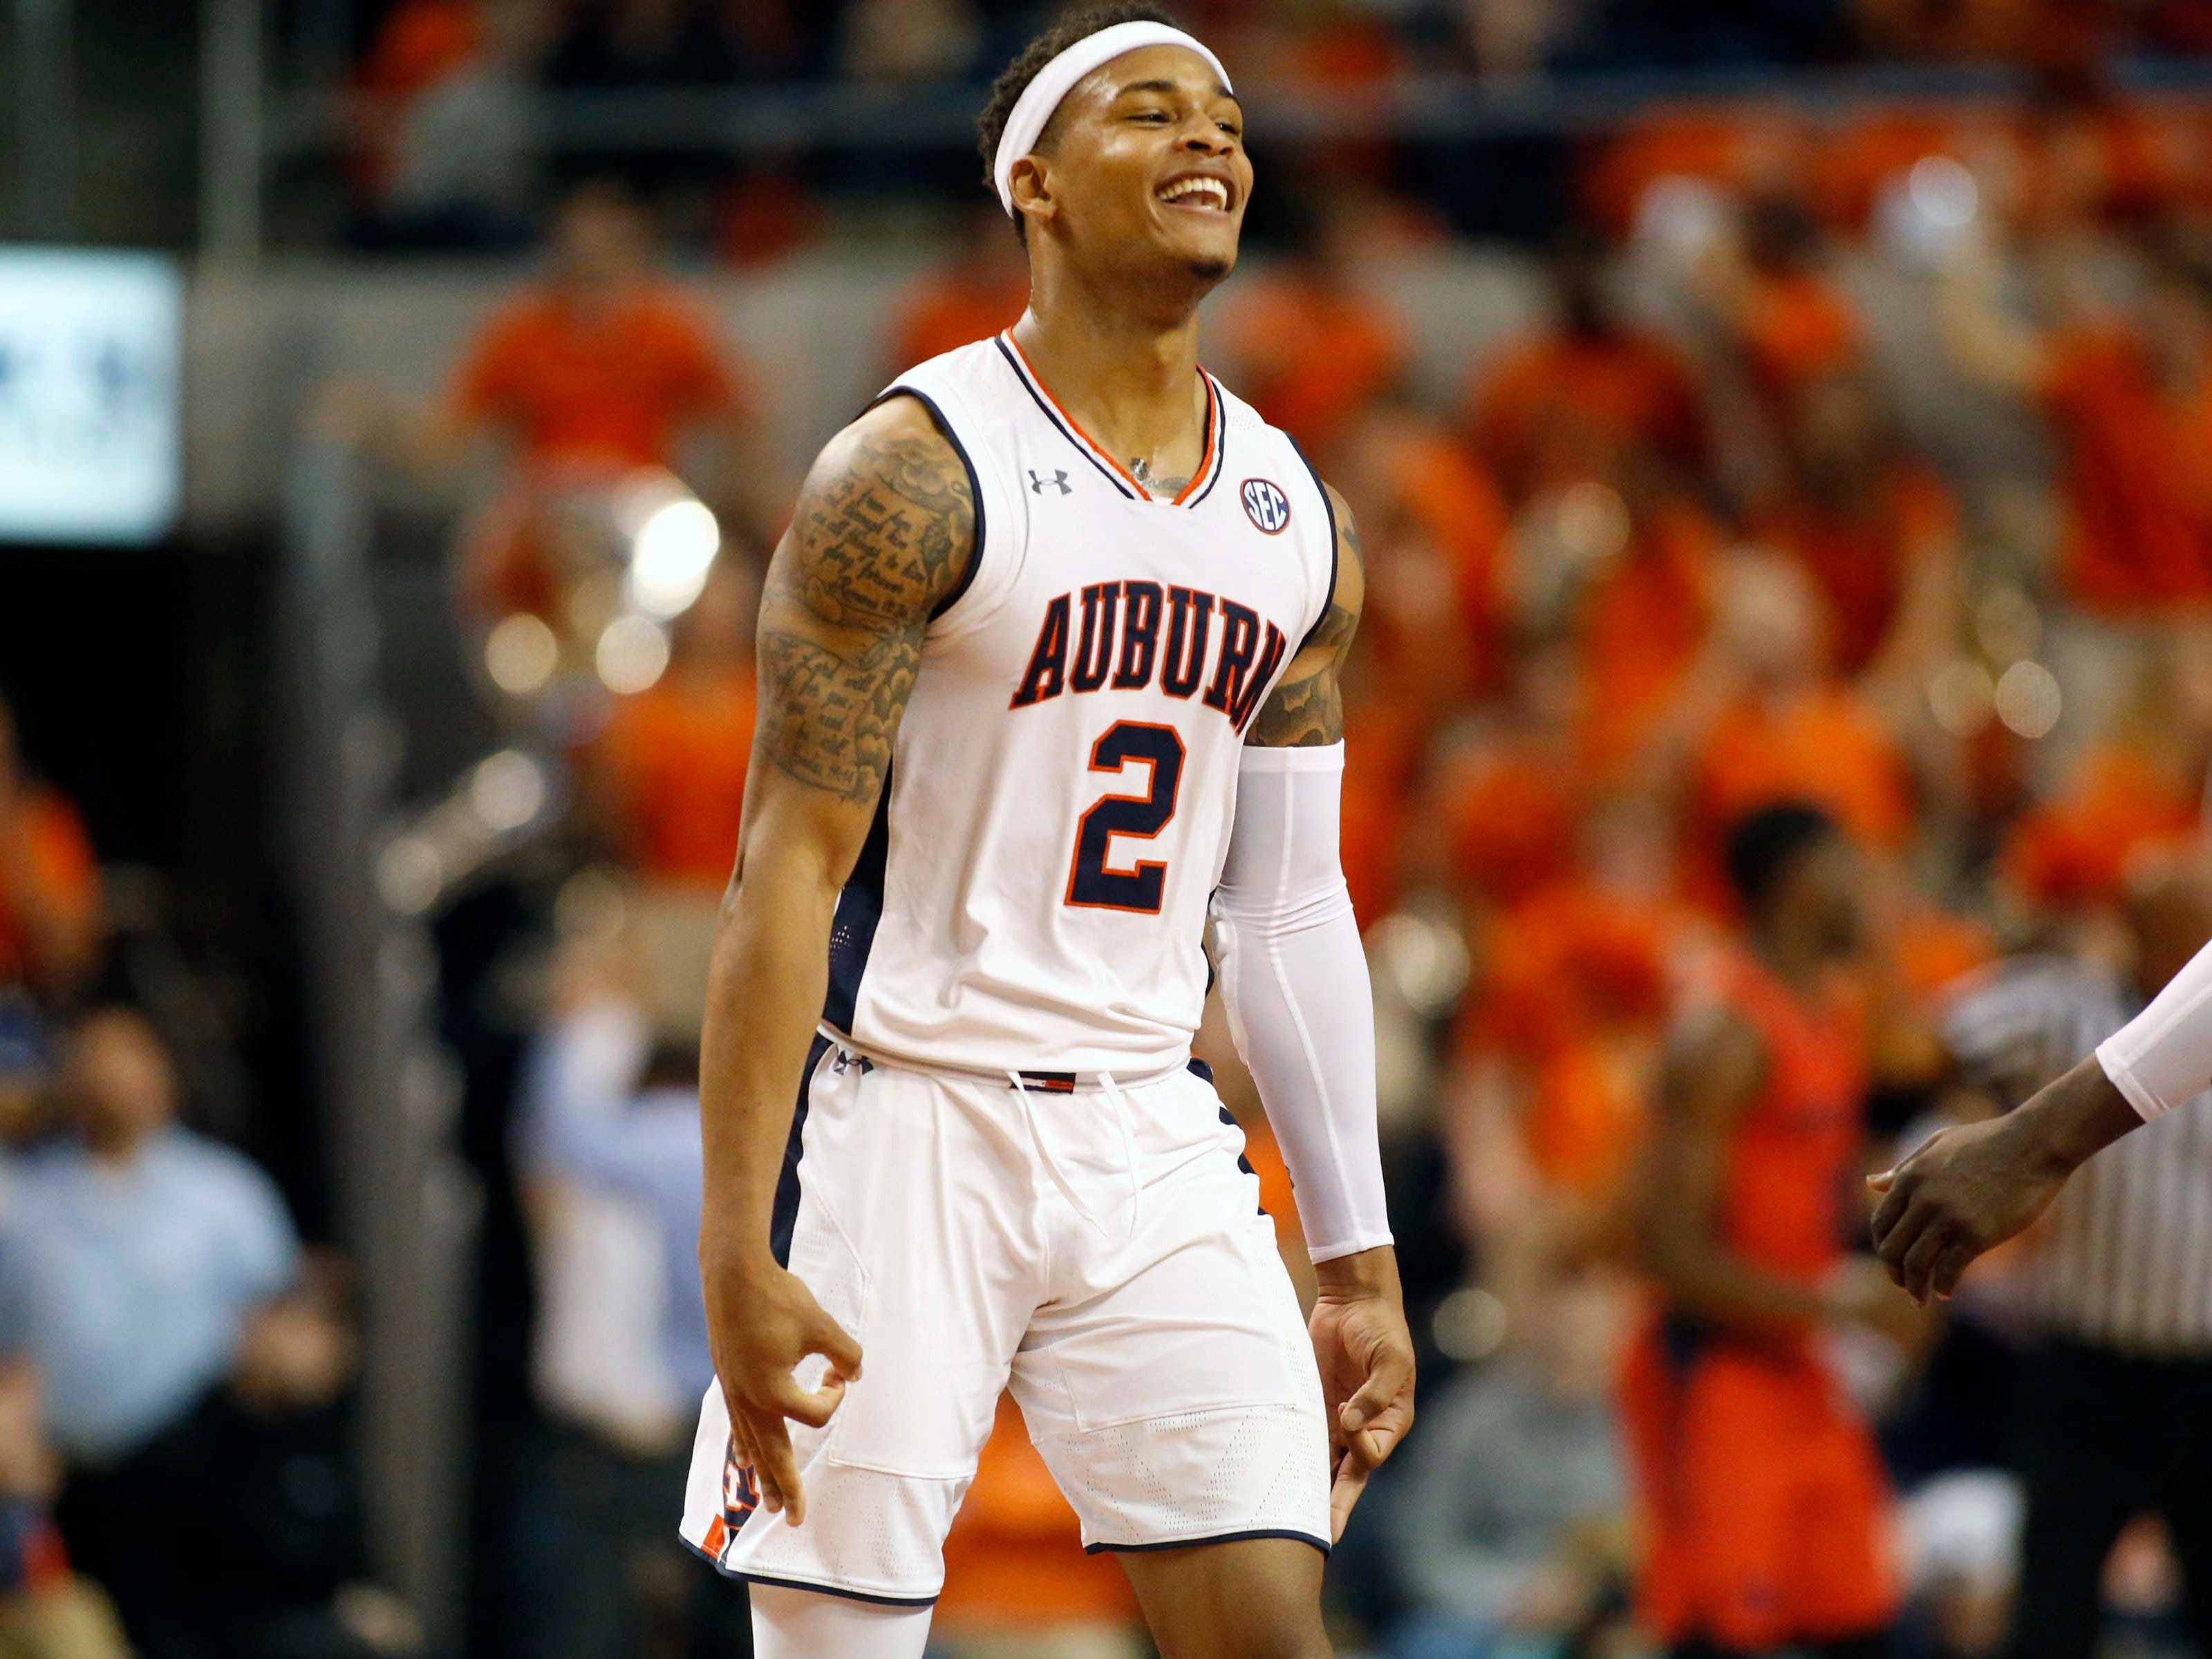 Auburn guard Bryce Brown (2) celebrates after scoring a 3-point shot against Dayton at Auburn Arena on Dec. 8, 2018.